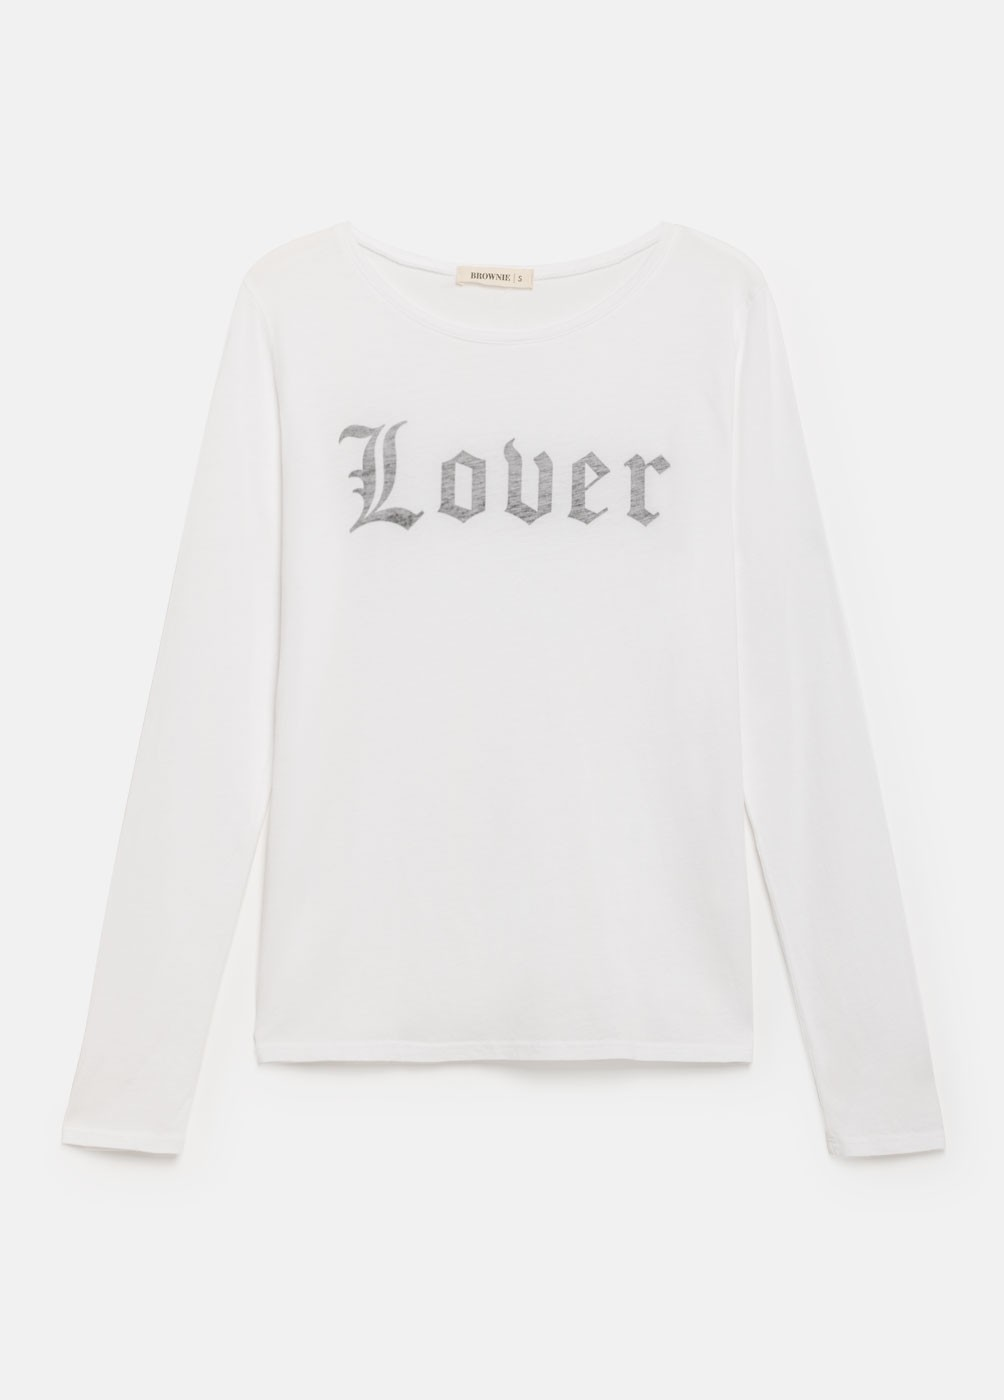 CAMISETA M/L ESTAMP LOVED LOVED